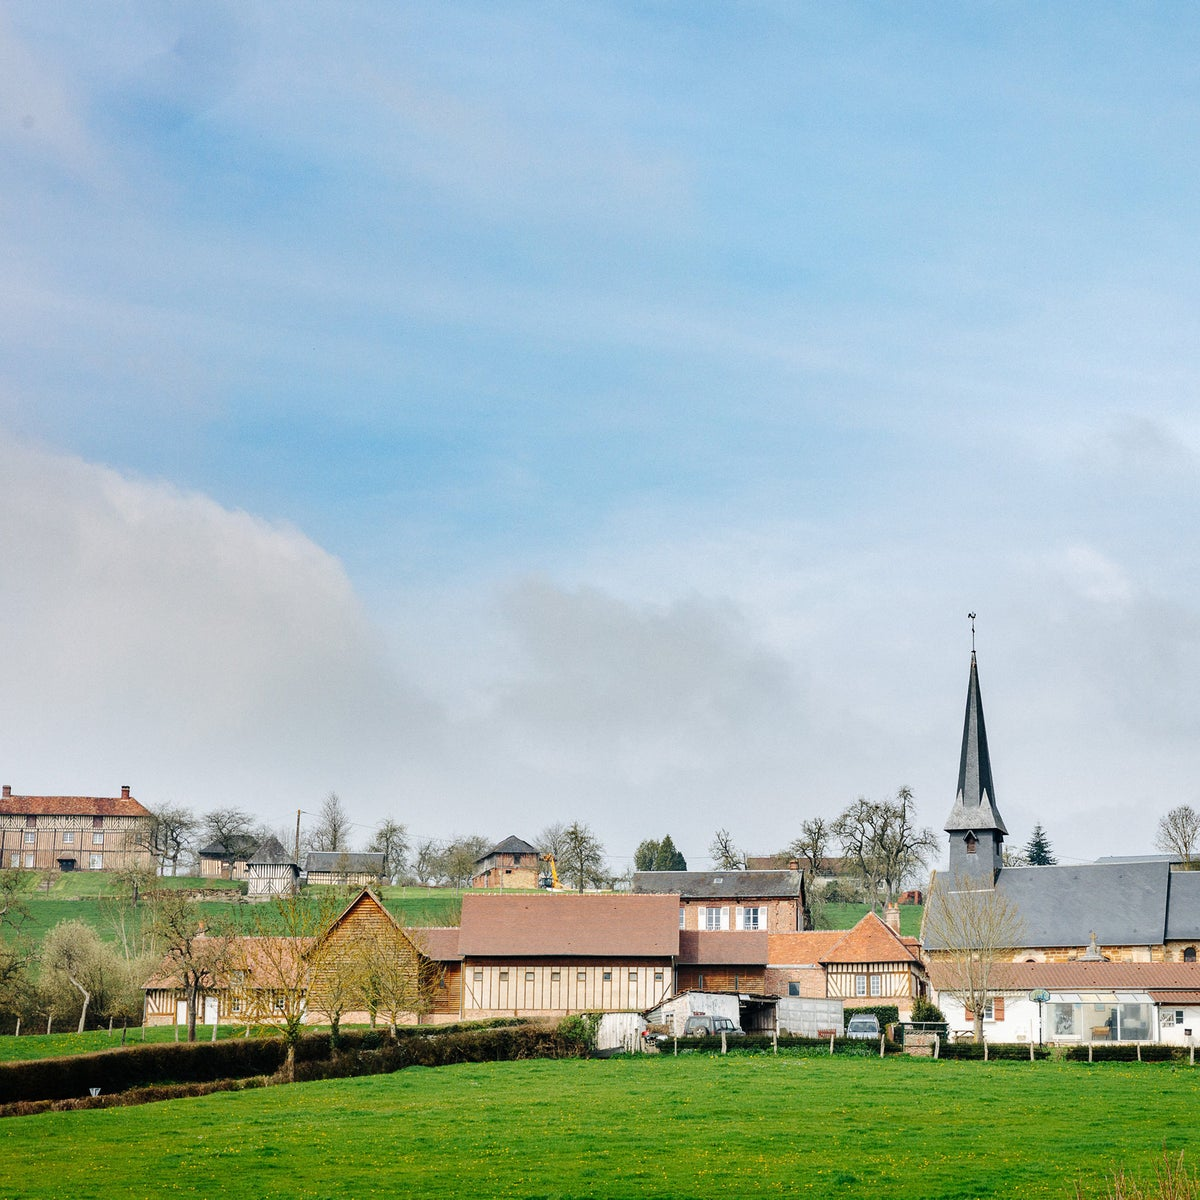 The village of Camembert in Normandy